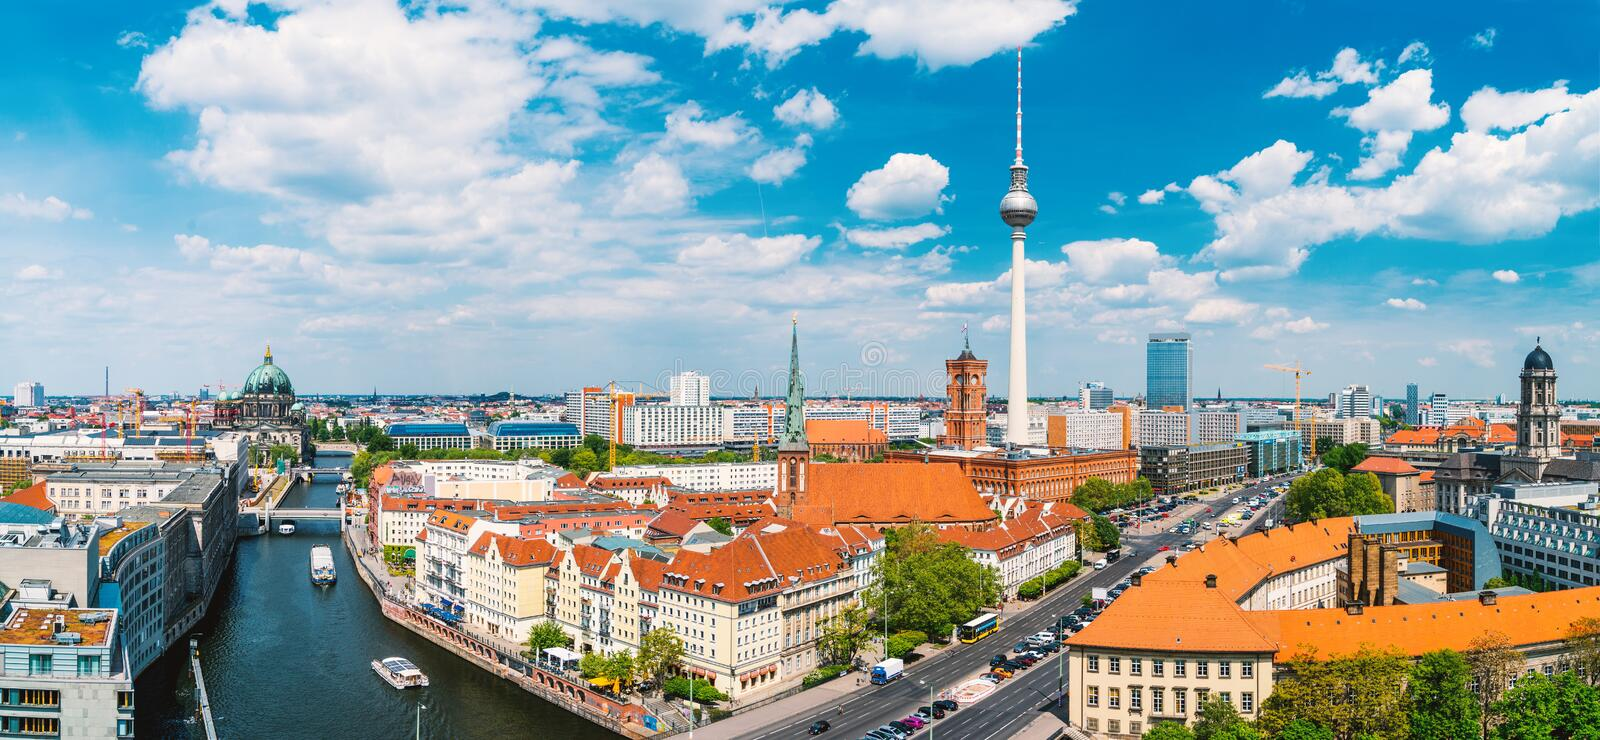 Berlin, Germany, during summer stock image